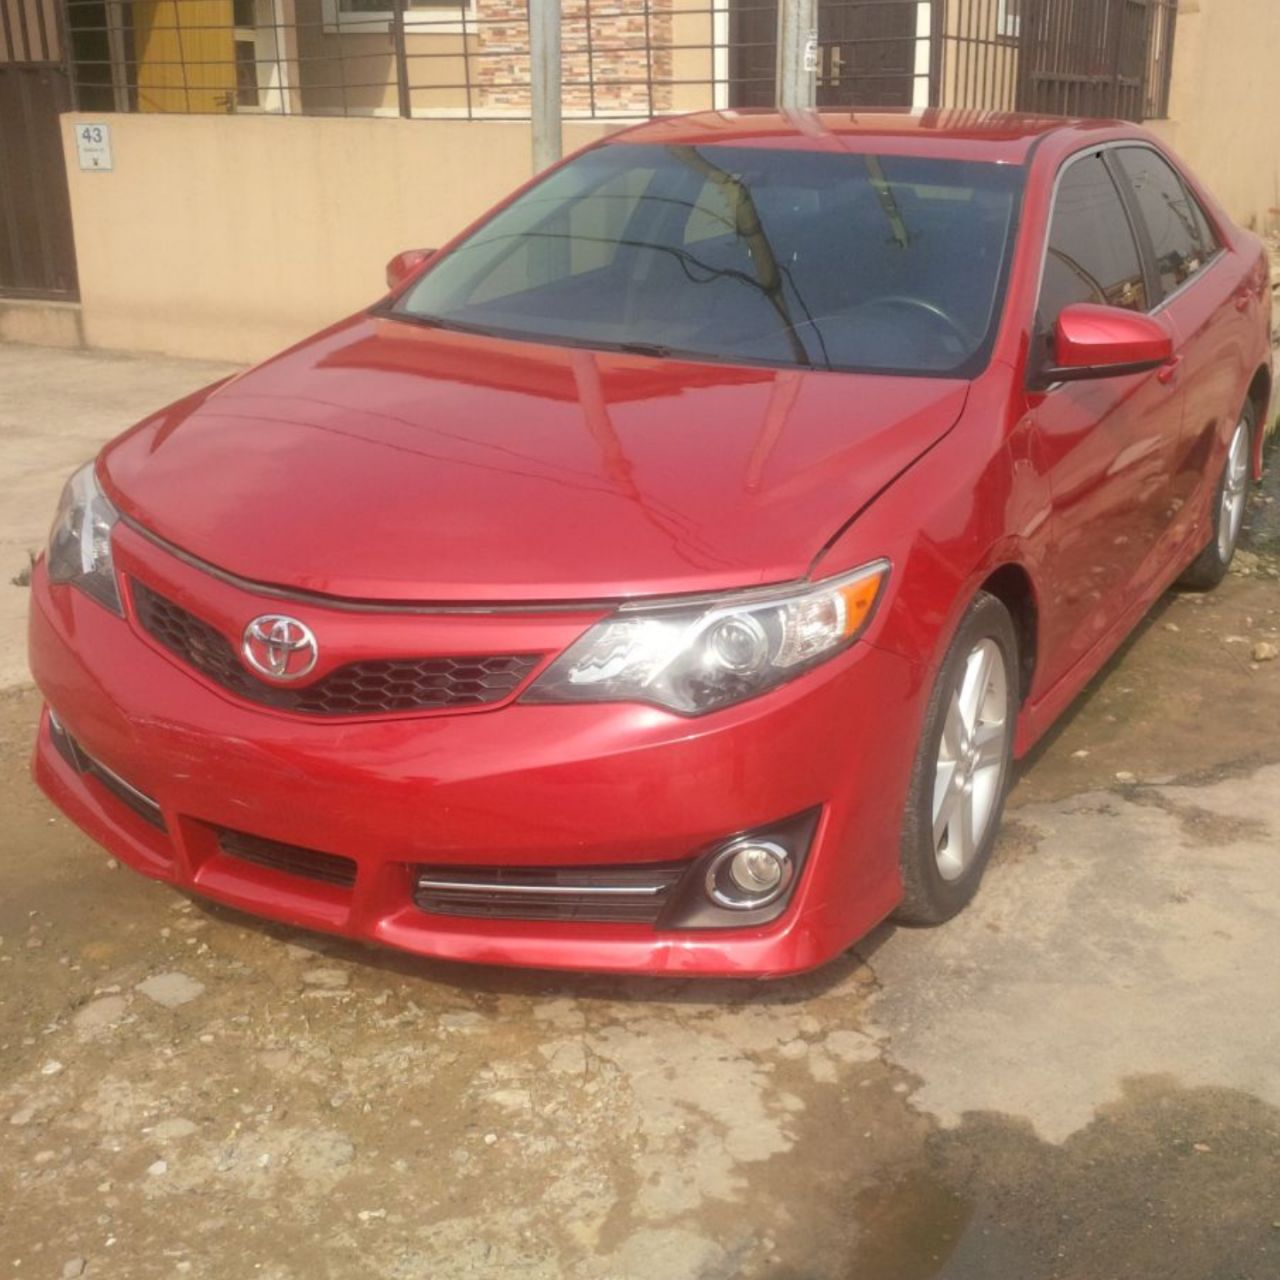 brand new toyota camry price in nigeria filter oli grand avanza mint 2014 sport toks available for sale